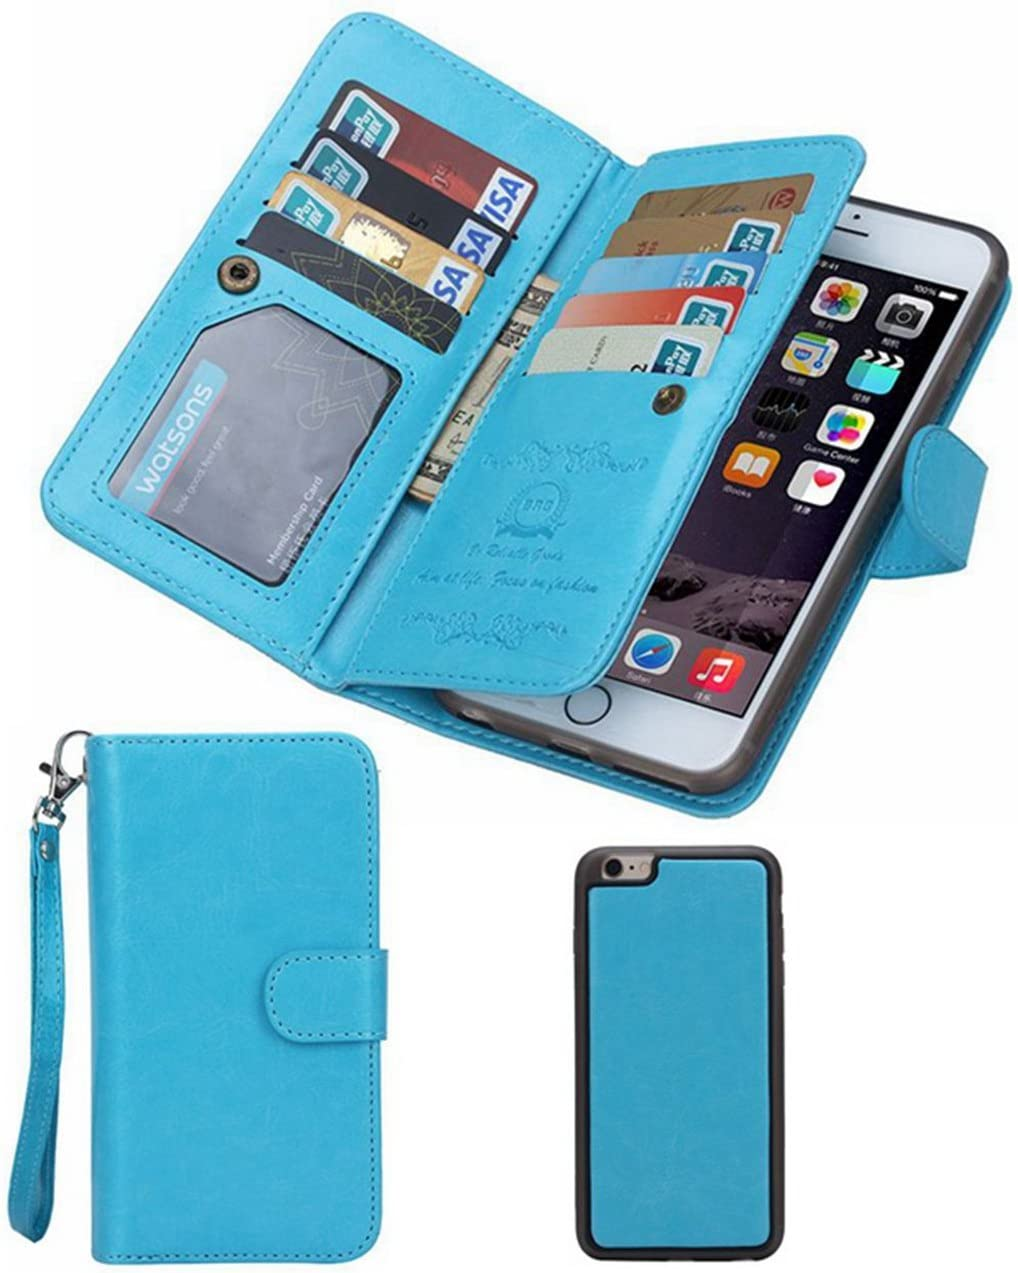 iPhone 5S/SE Wallet Case, HYSJY Magnetic Detachable PU Leather Wallet Purse for Women Men with Strap, Credit Card Slots, Card Holer,Flip Slim Cover Case Fit iPhone 5/5S/SE (Card-Blue)